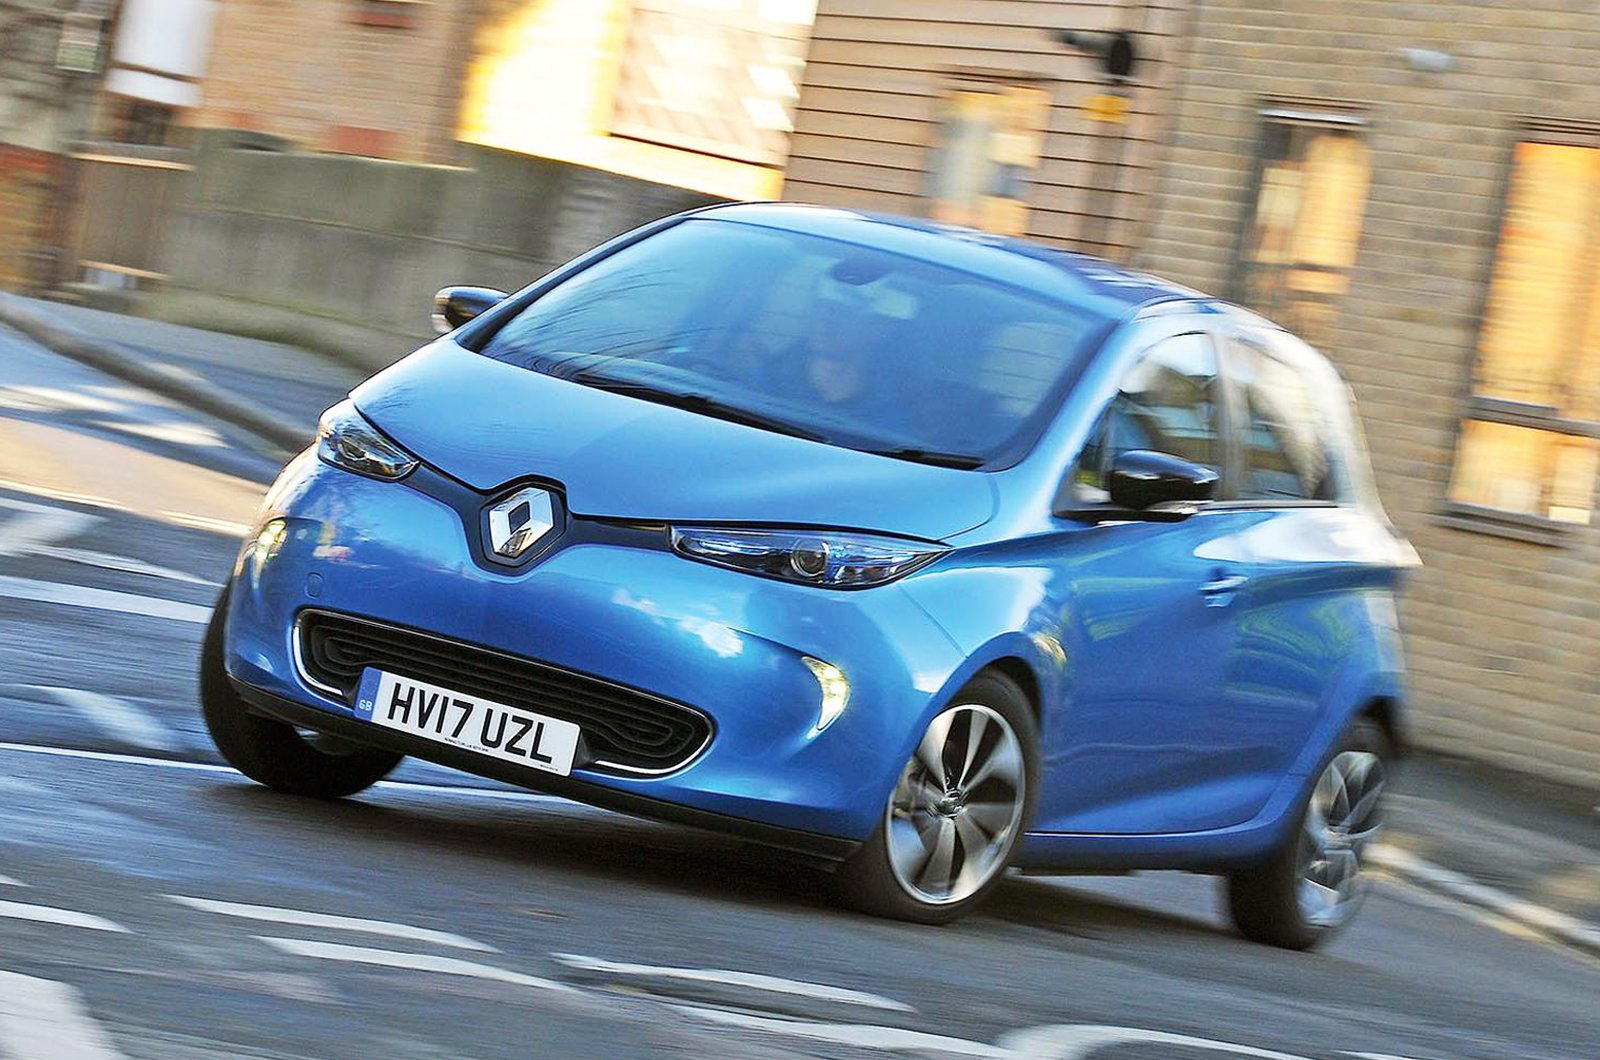 Electric Car of the Year Awards 2021 - Renault Zoe